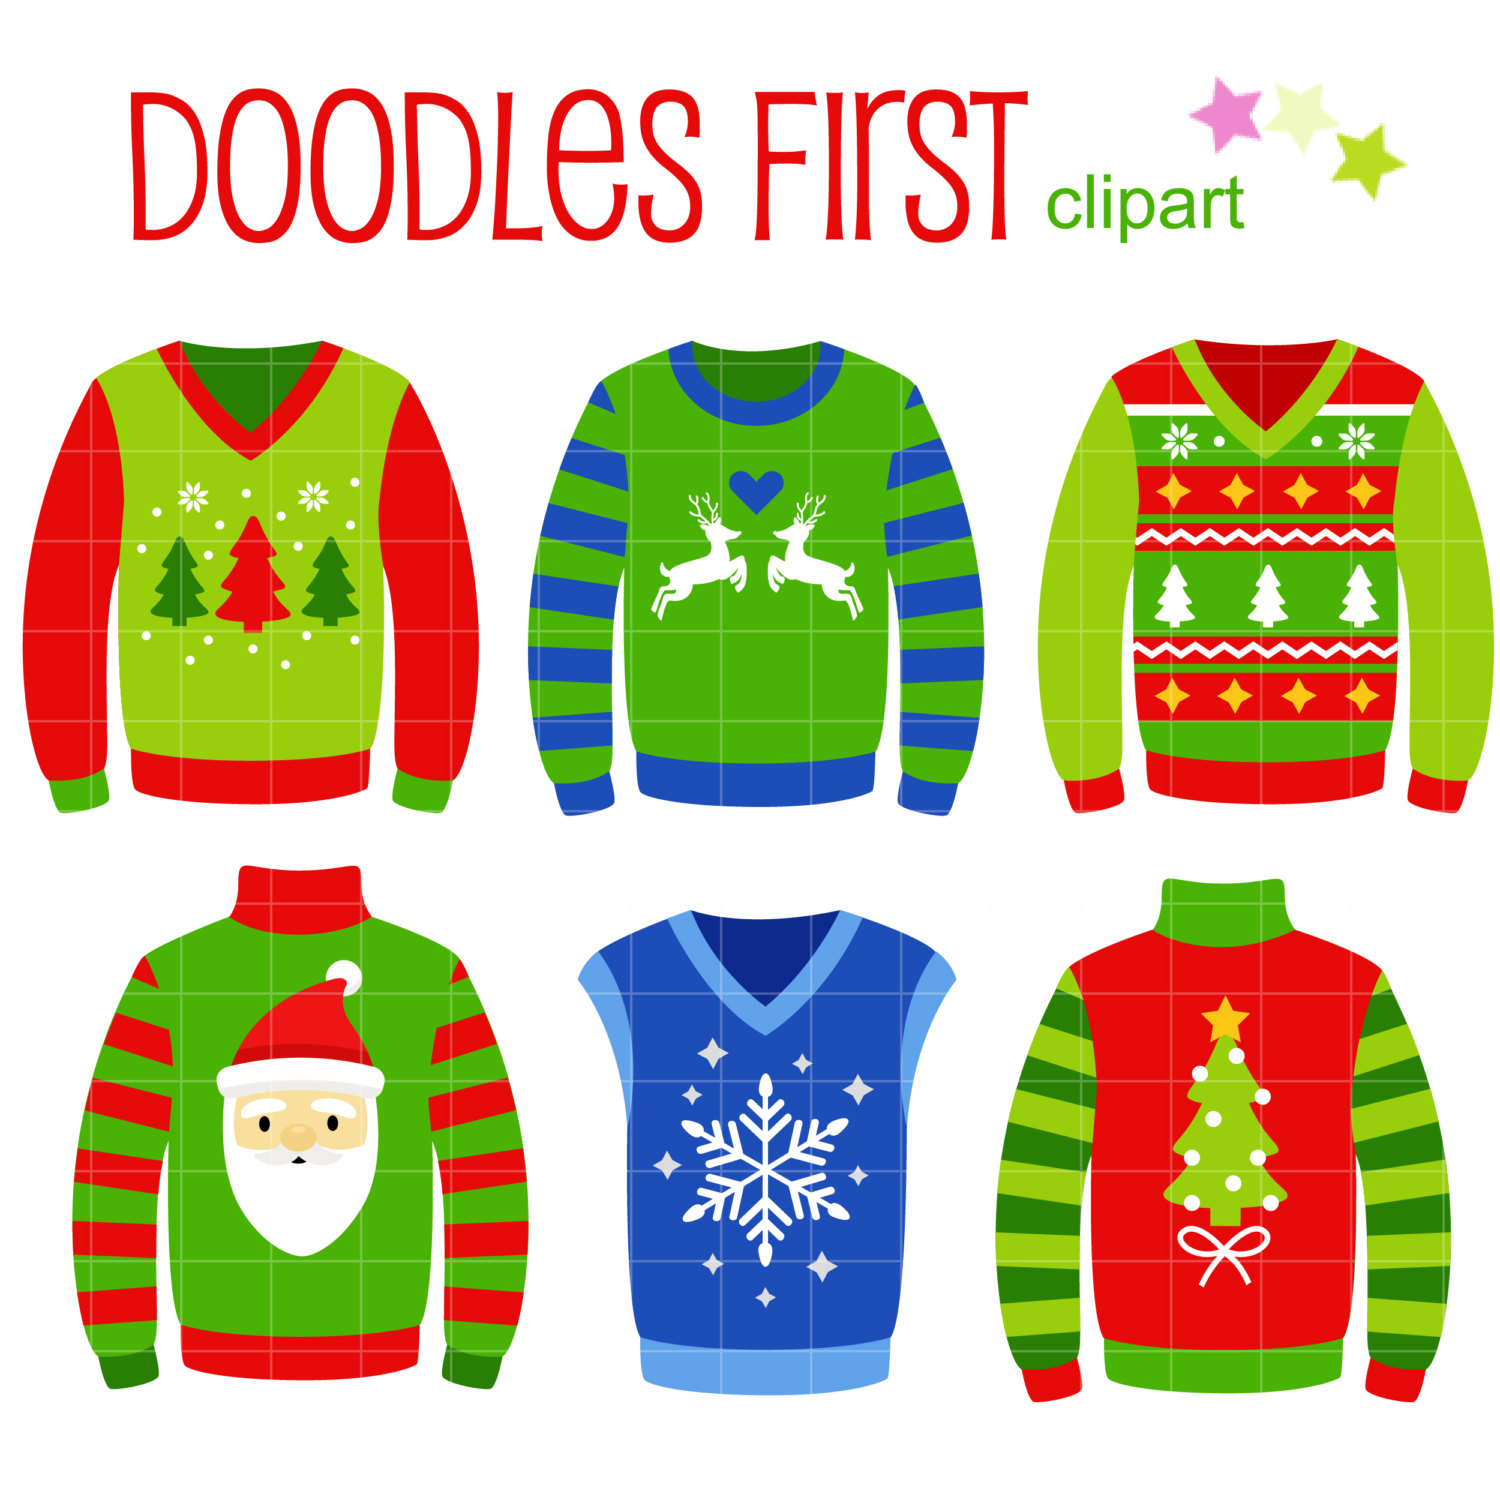 Ugly Sweater Clip Art Images 93